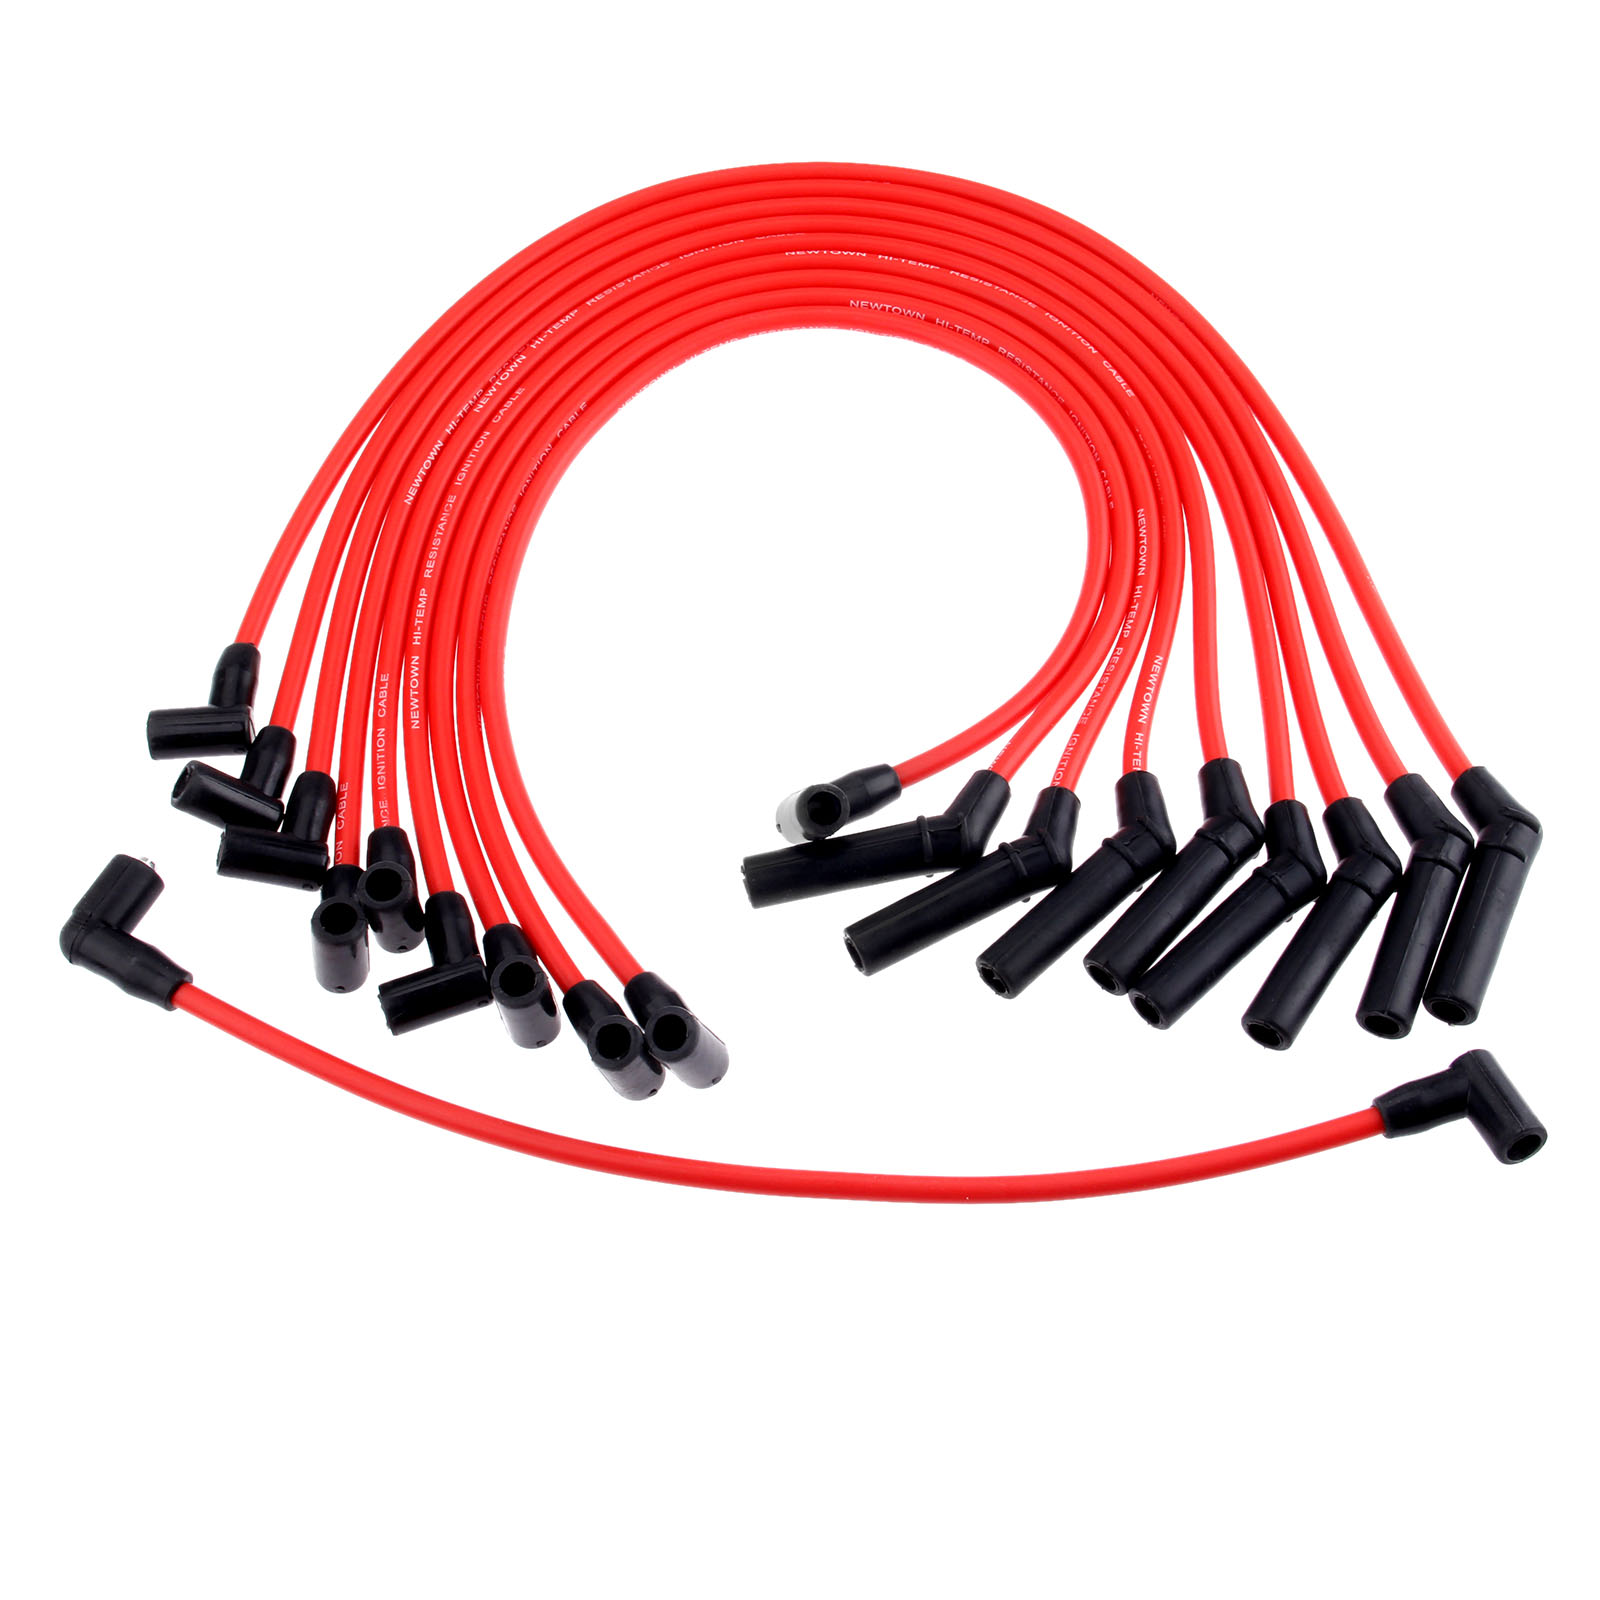 10Pcs 9mm Ignition Wires Spark Plug Wire Cable Set M12259R301 For Ford MUSTANG F-150 5.0L 5.8L V8 SBF 302W 302 WINDSOR